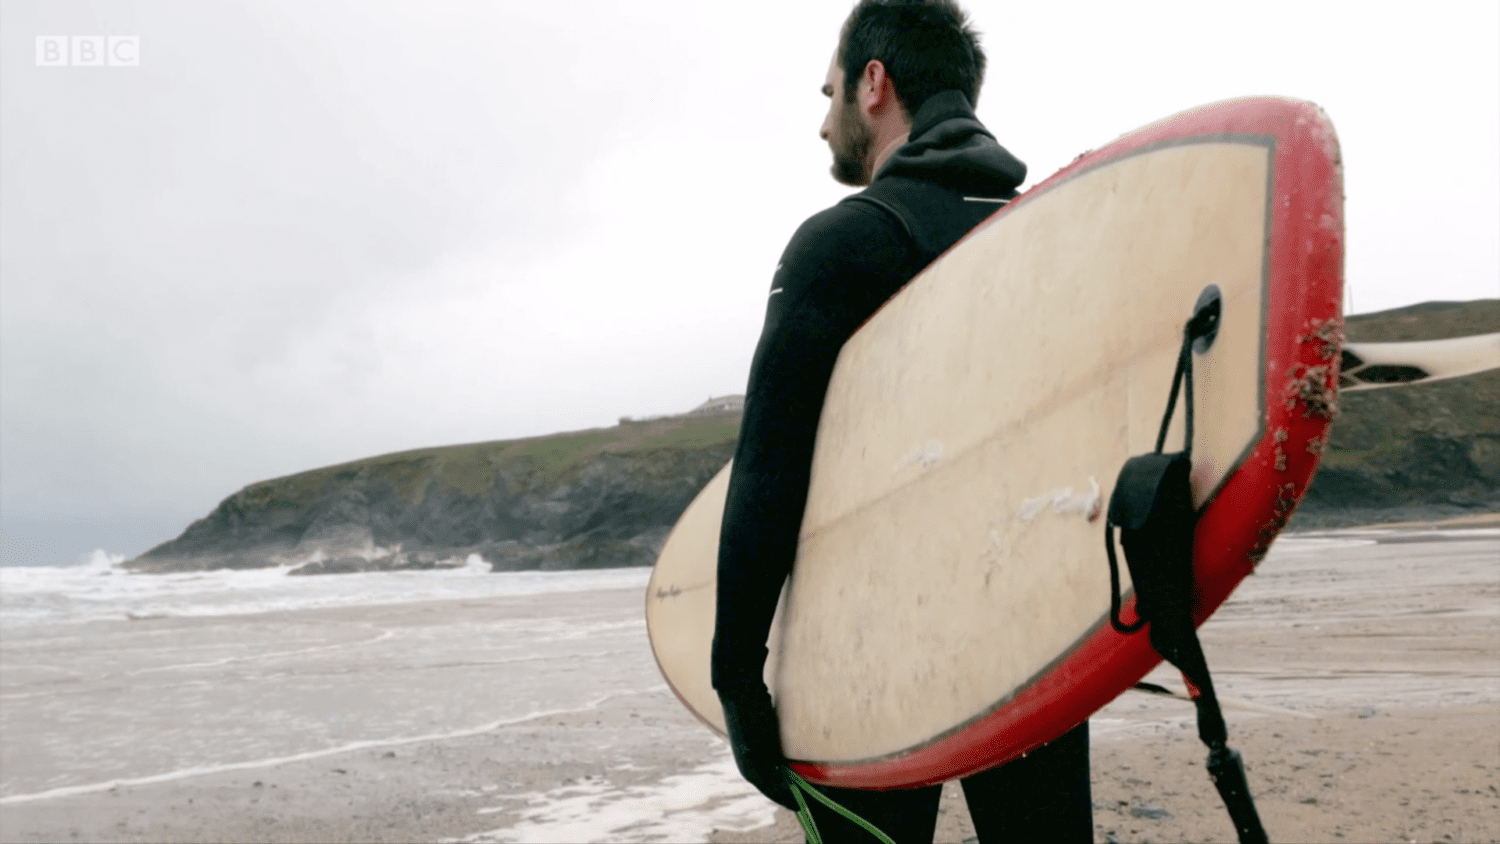 Antibiotic Resistance Countryfile Blog - Surfer Looking out At Sea